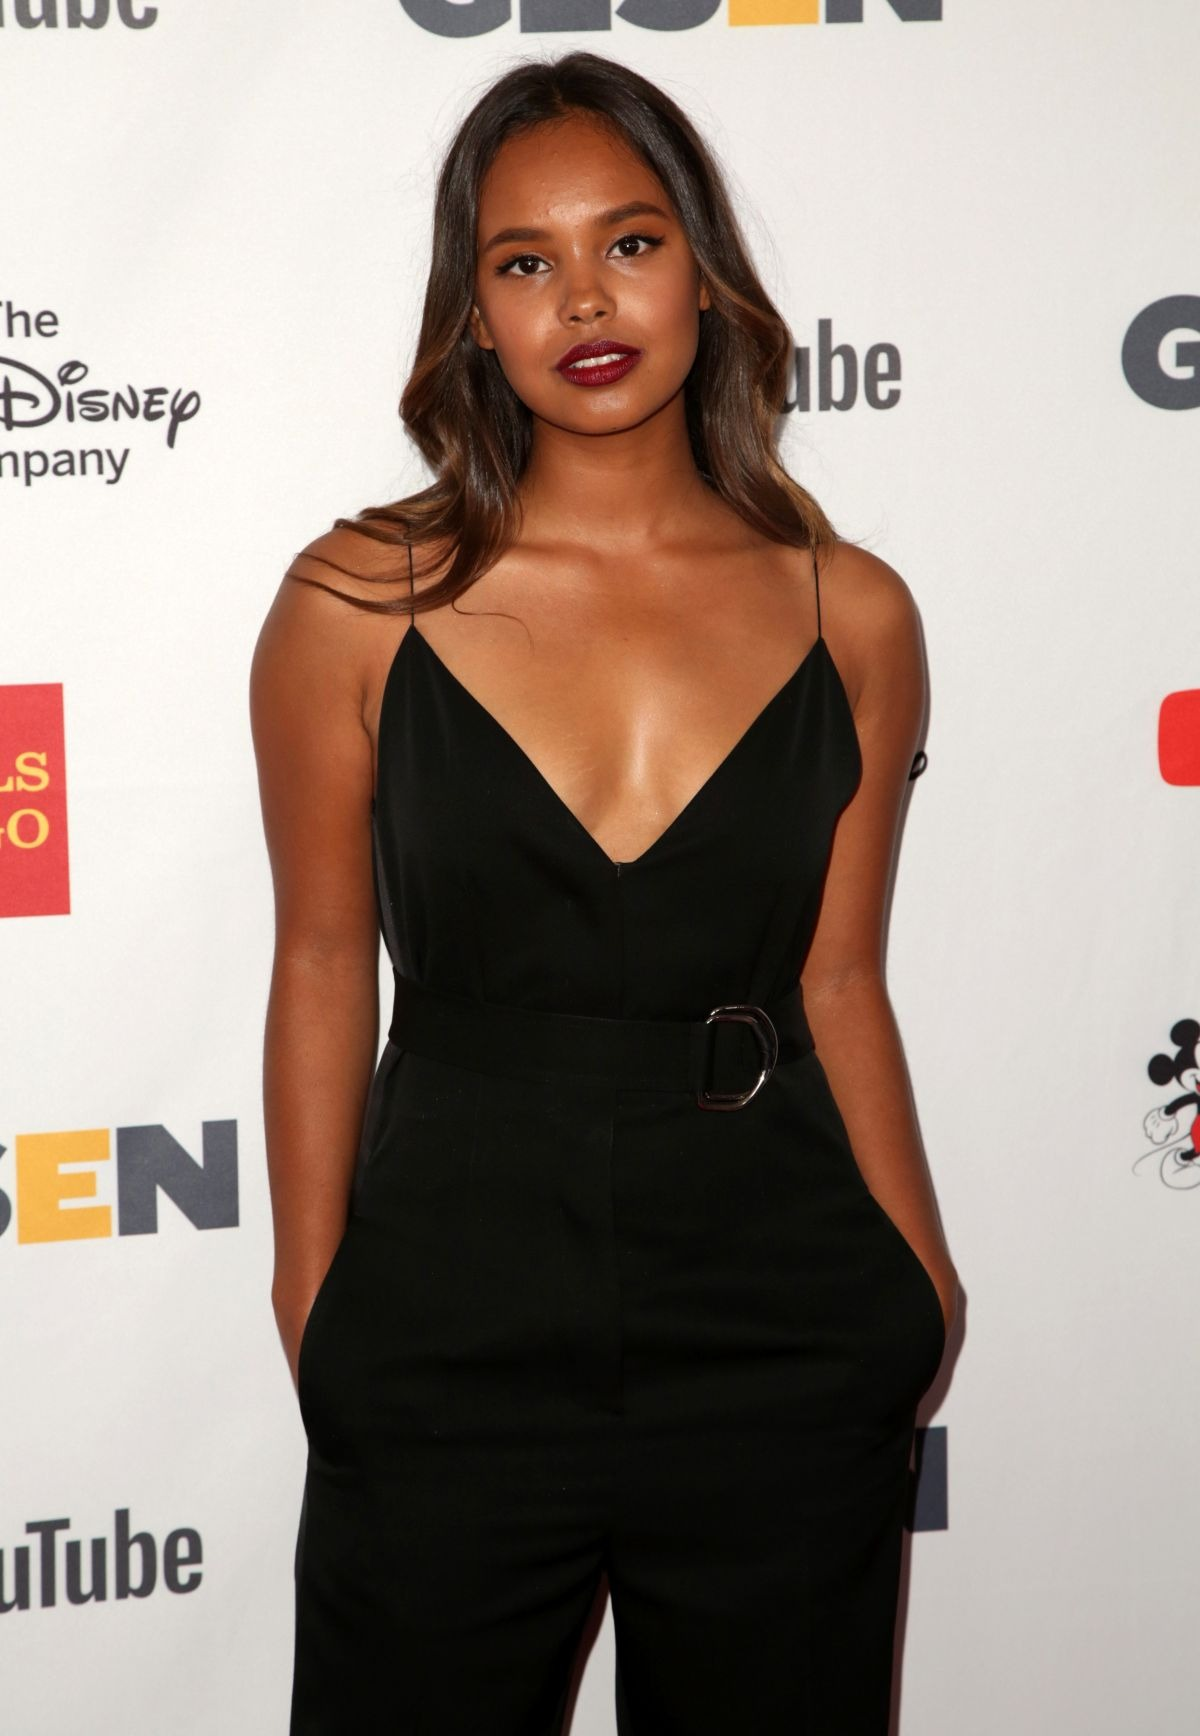 Alisha Boe is looking bold in her black outfit